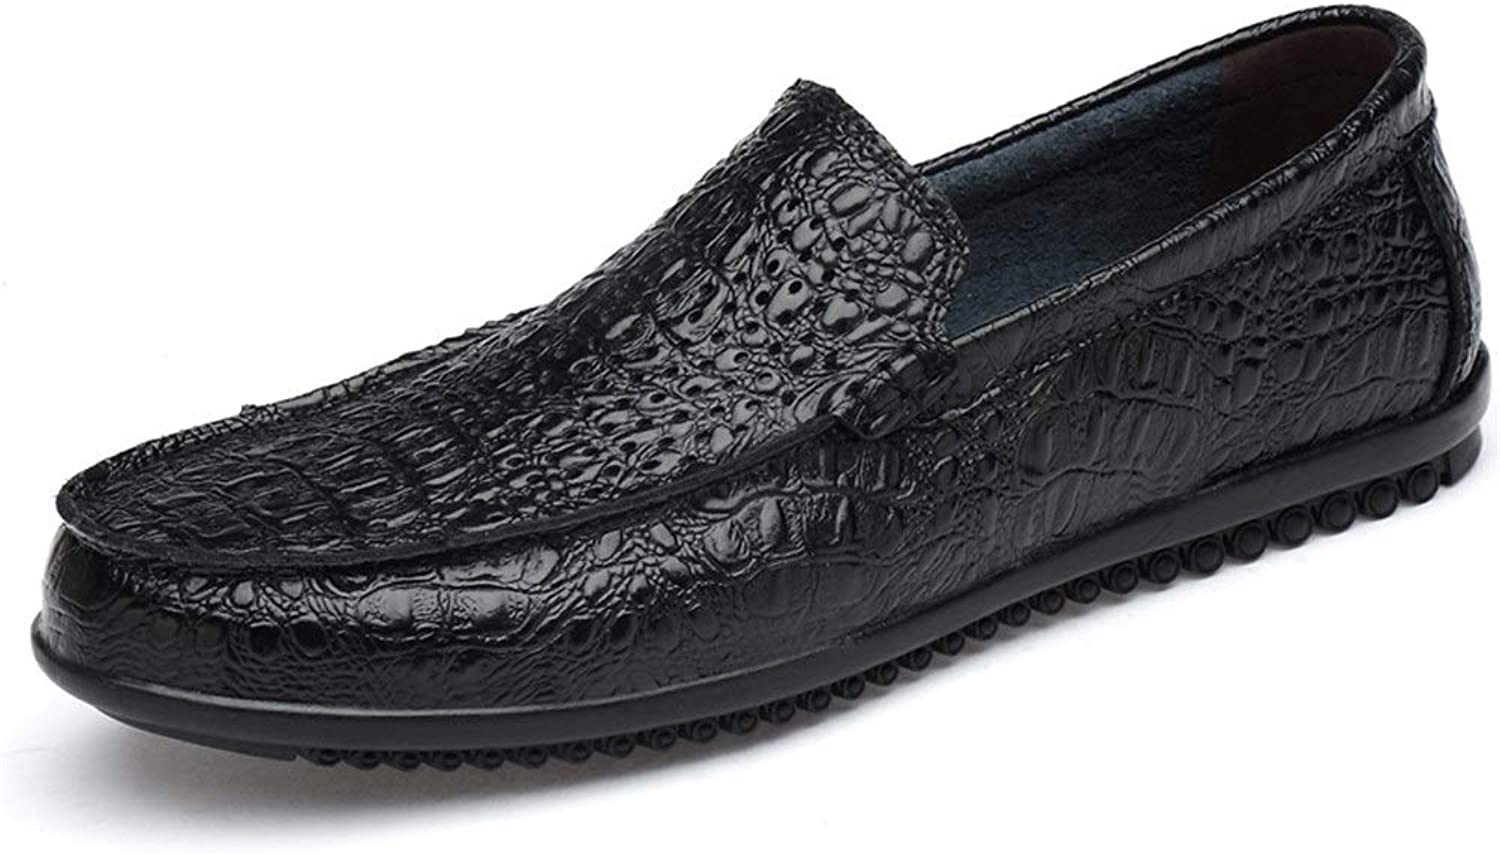 Easy Go Shopping Driving Loafer Men's Boat Moccasins Slip On OX Leather Crocodile Skin Print Round Toe shoes Cricket shoes (color   Balck hollow, Size   6.5 UK)